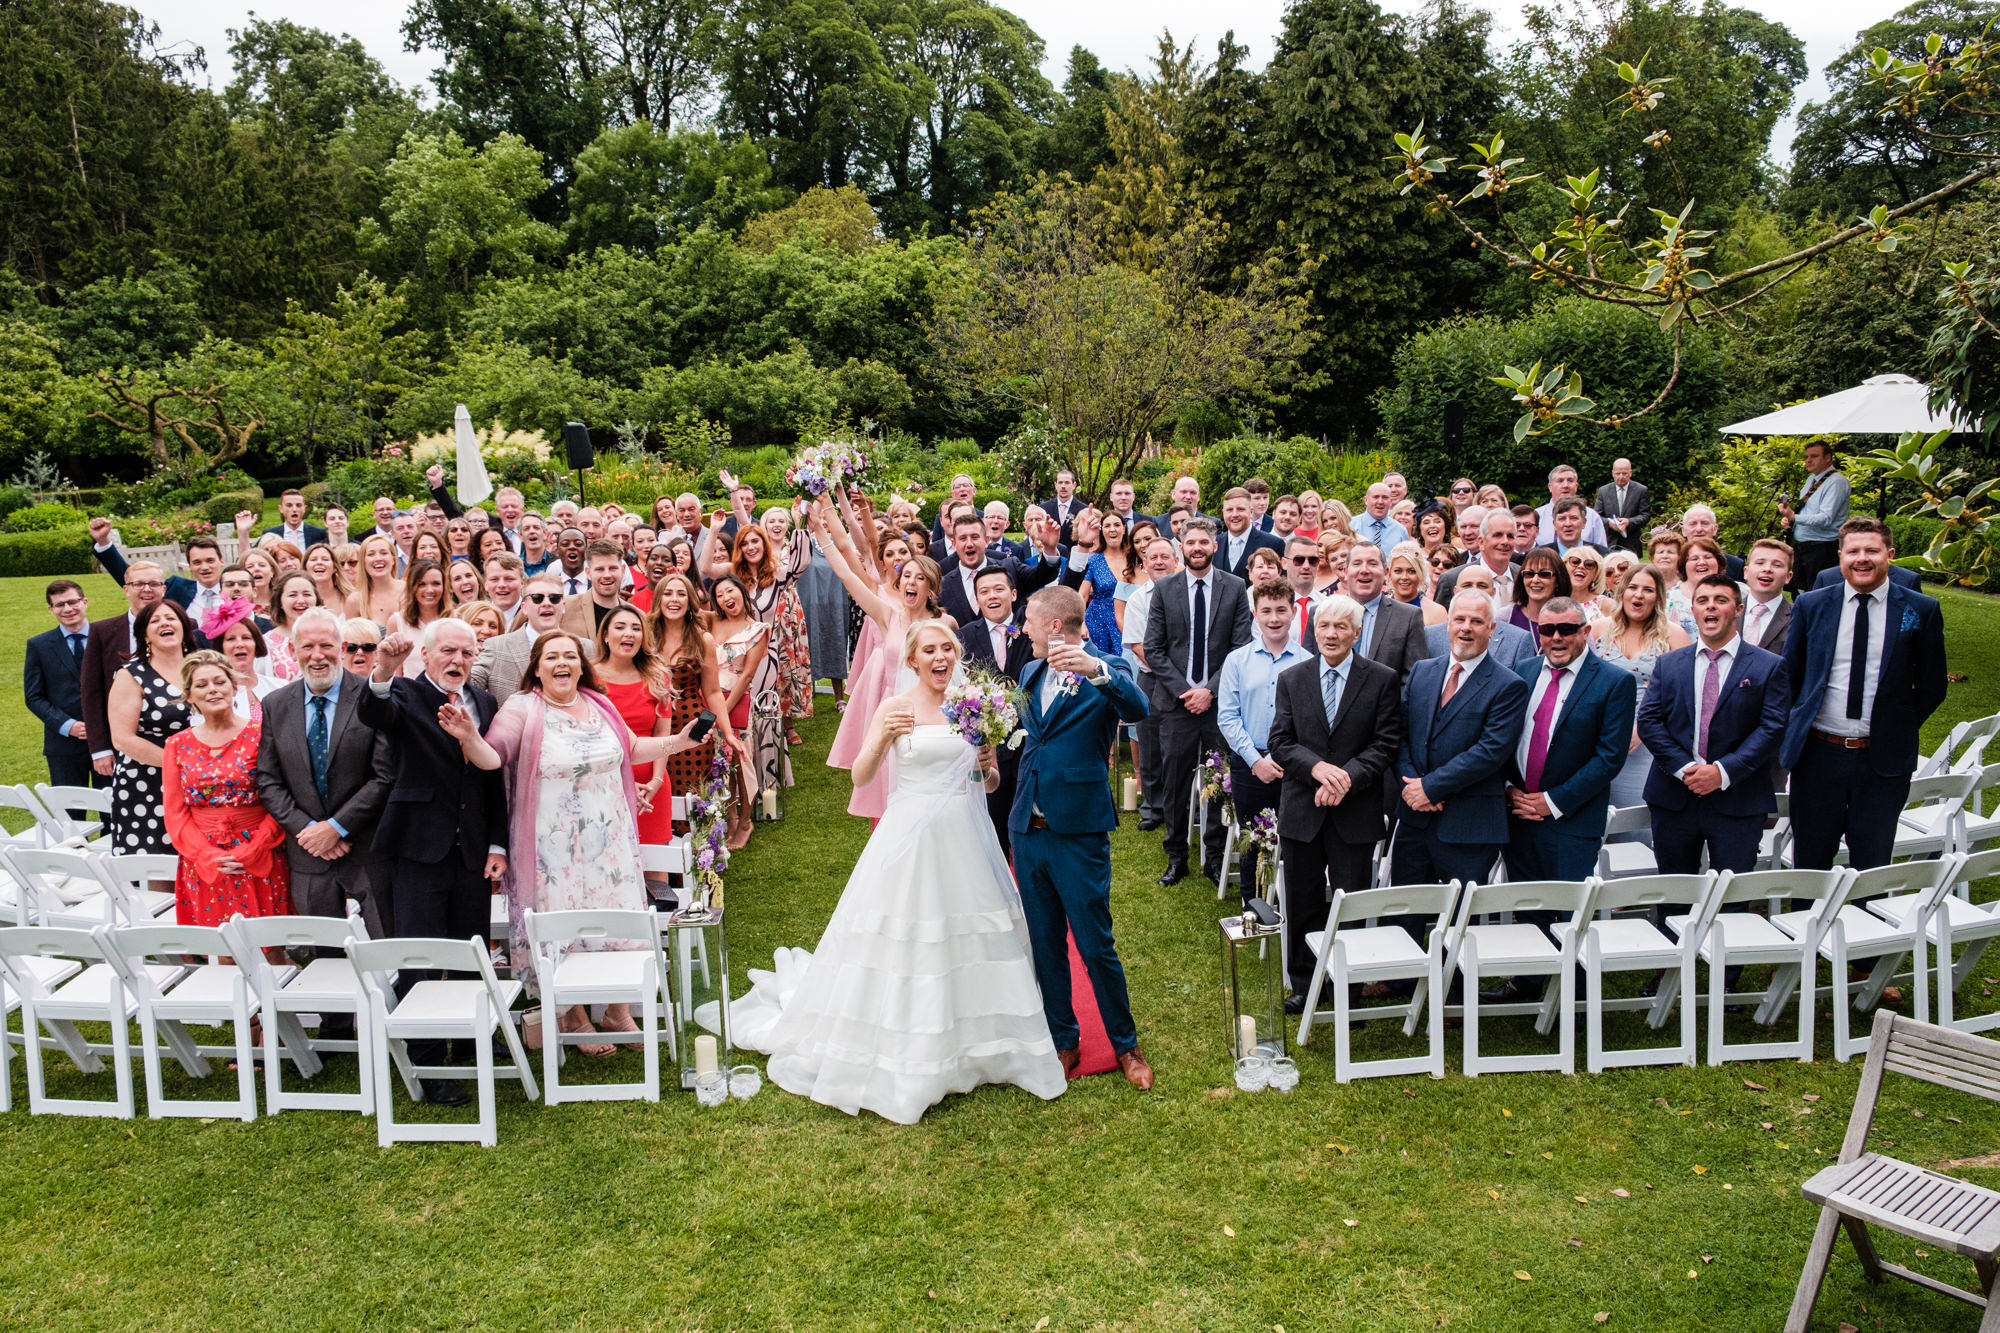 Rathsallagh wedding group photo